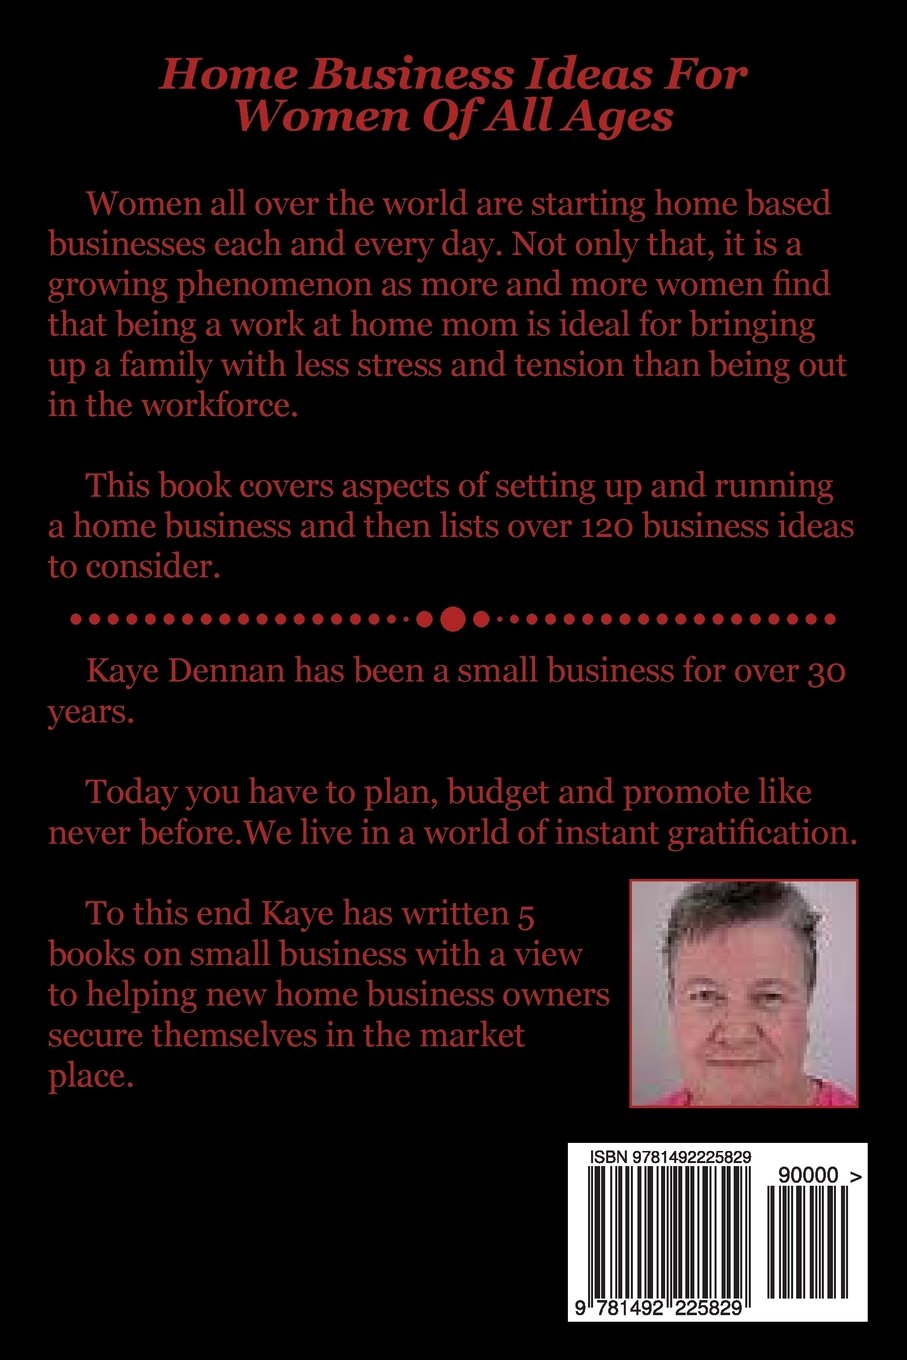 Home Business Ideas For Women Of All Ages Kaye Dennan